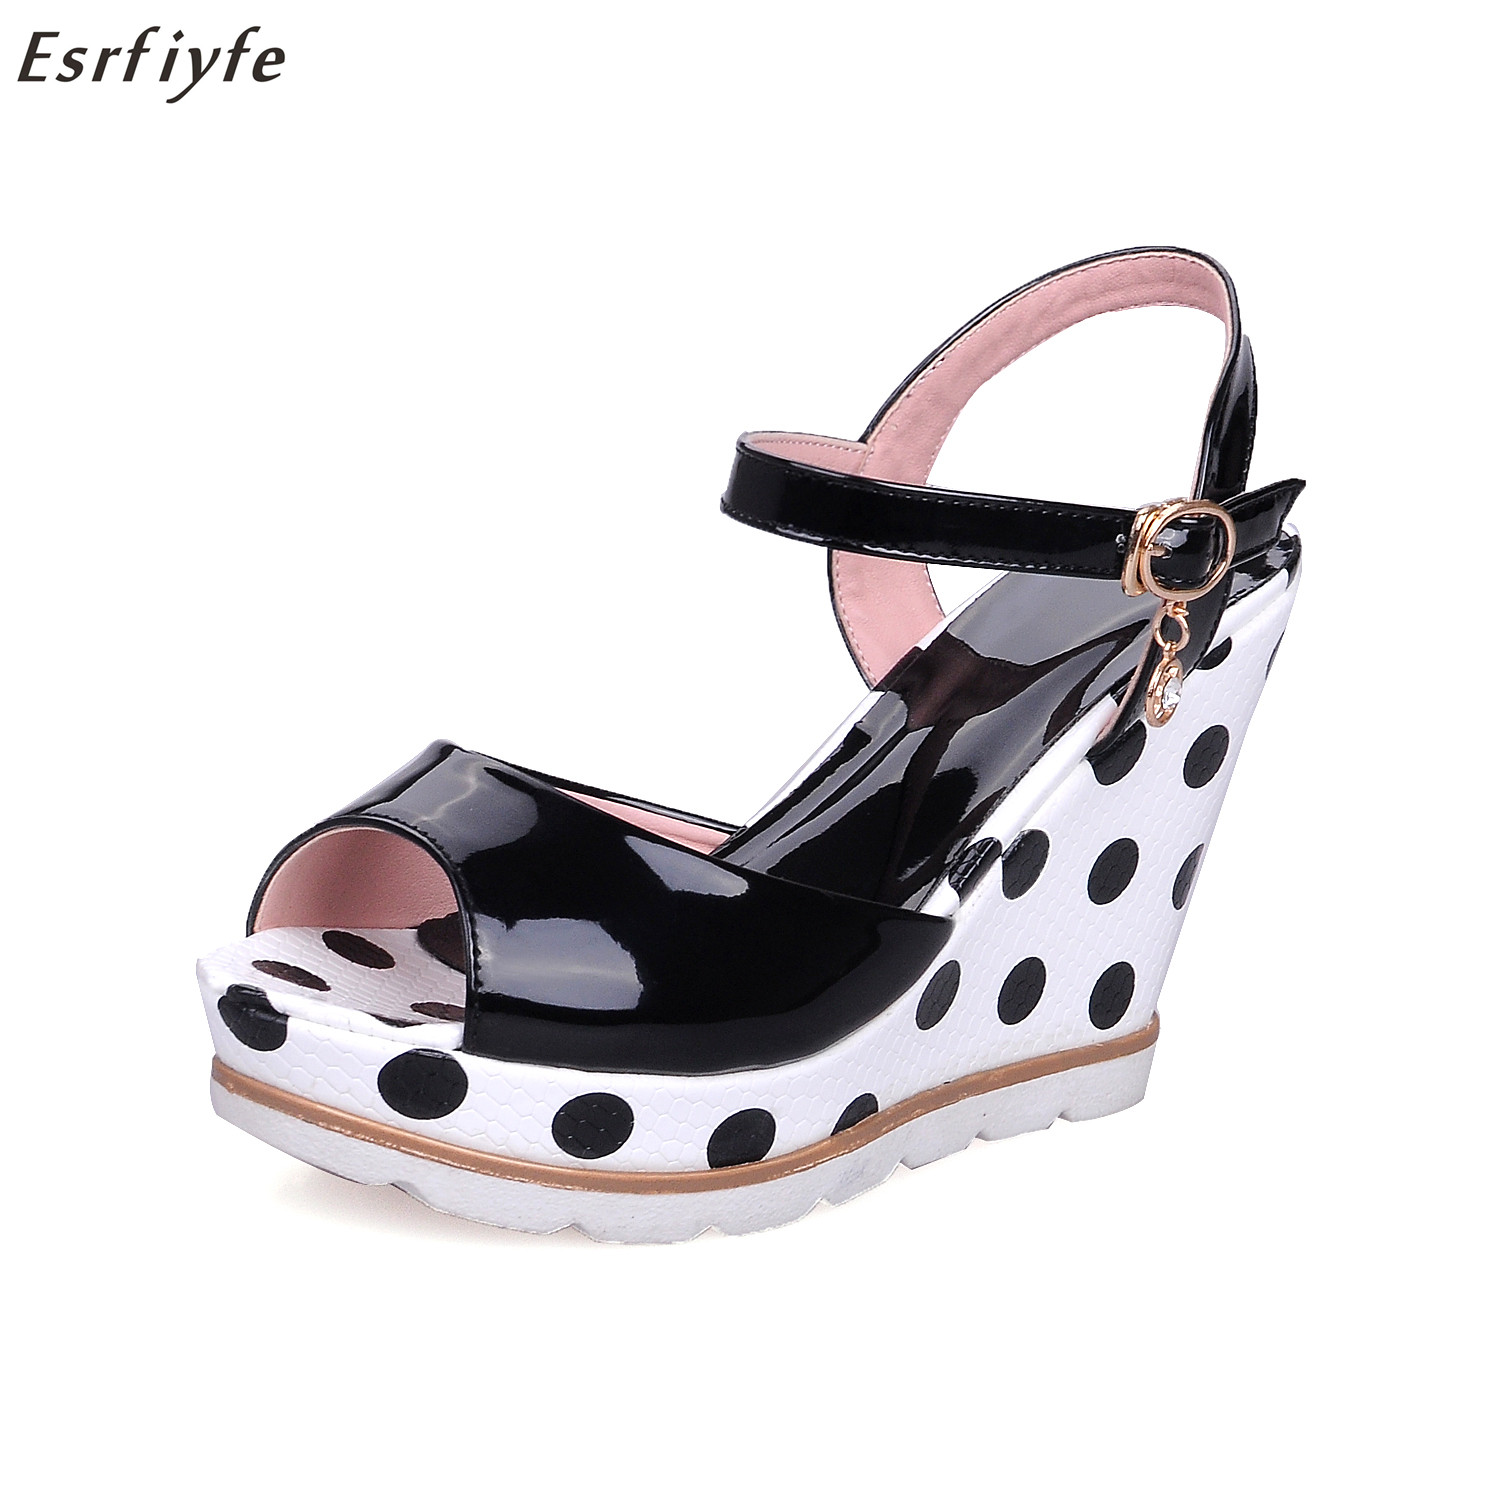 ESRFIYFE Plus Size 10 Women Sandals Ankle Strap Straw Platform Wedges for Female Shoes Flock High Heels Cover Heel Sandals sgesvier european style ankle strap women summer shoes wedges high heels sandals platform causel shoes plus size 34 43 vv431